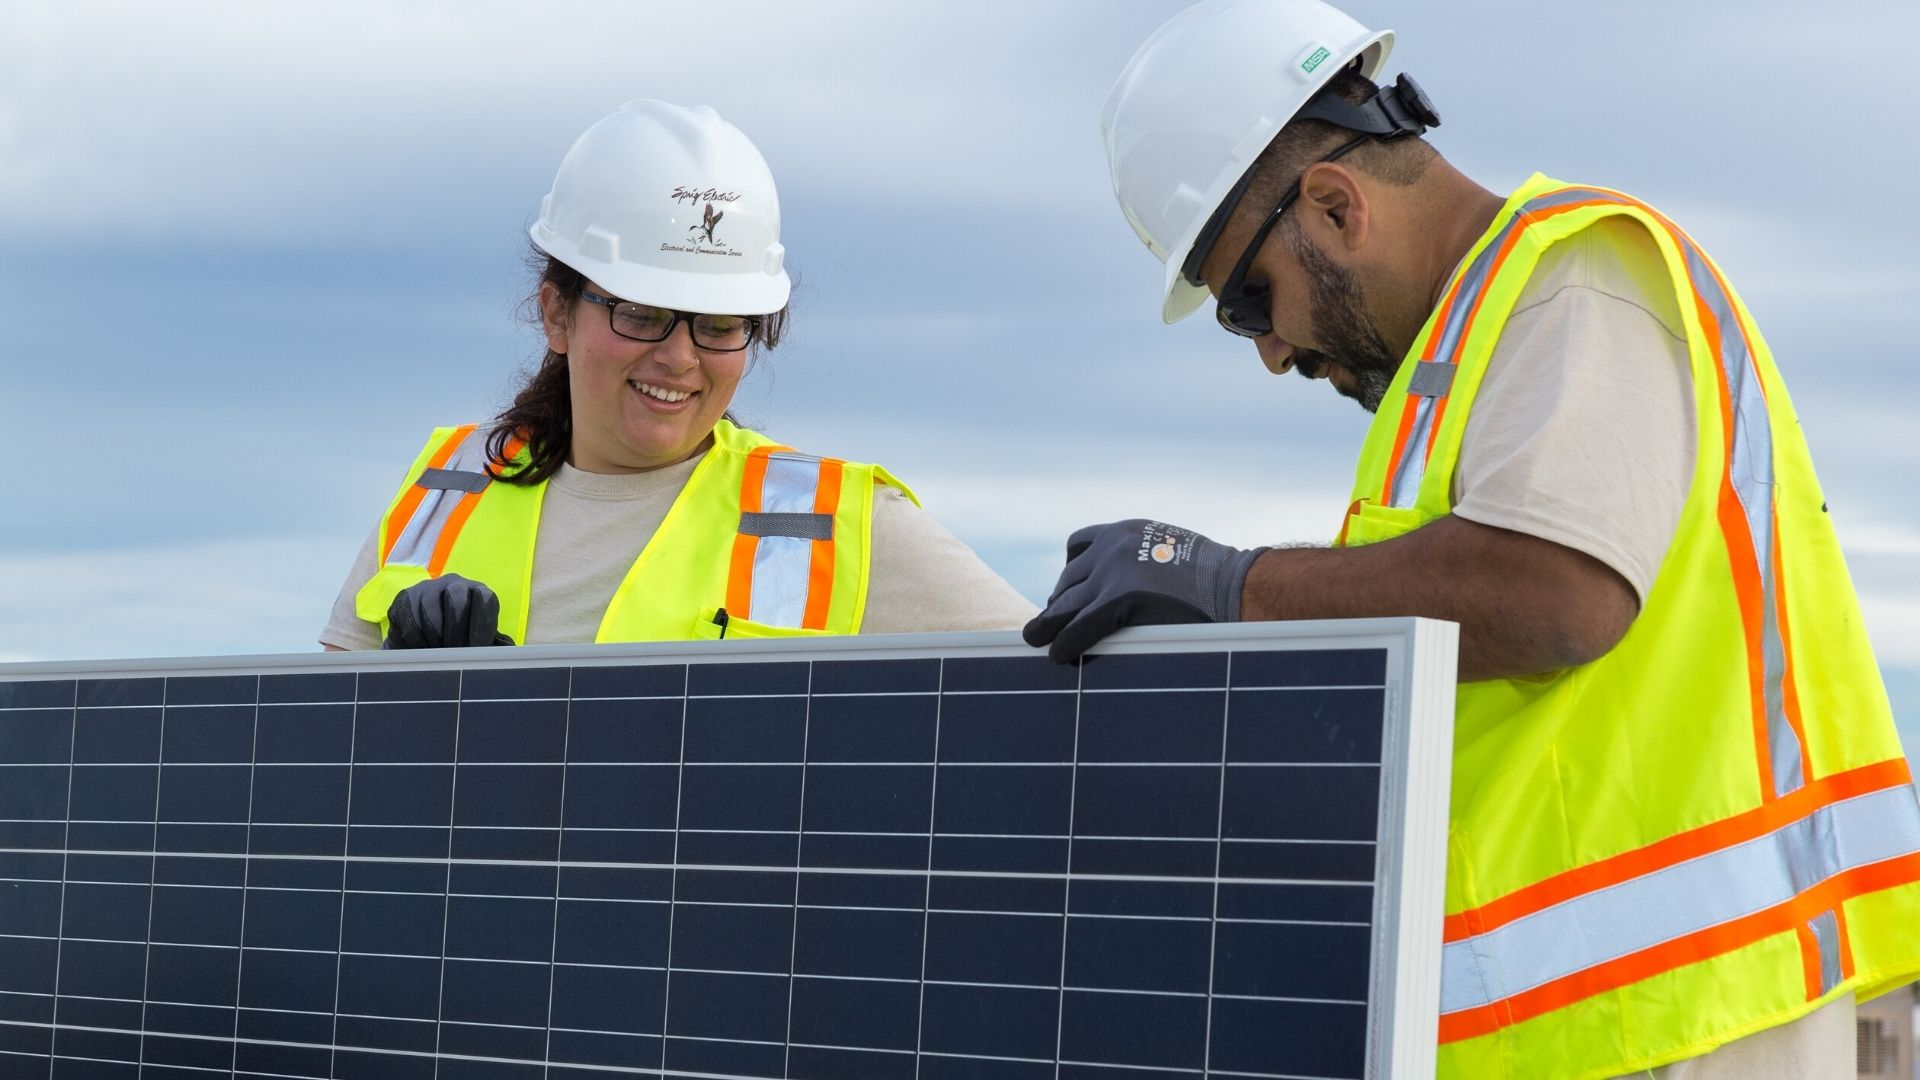 Two Sprig Electric construction workers working together on a solar panel.